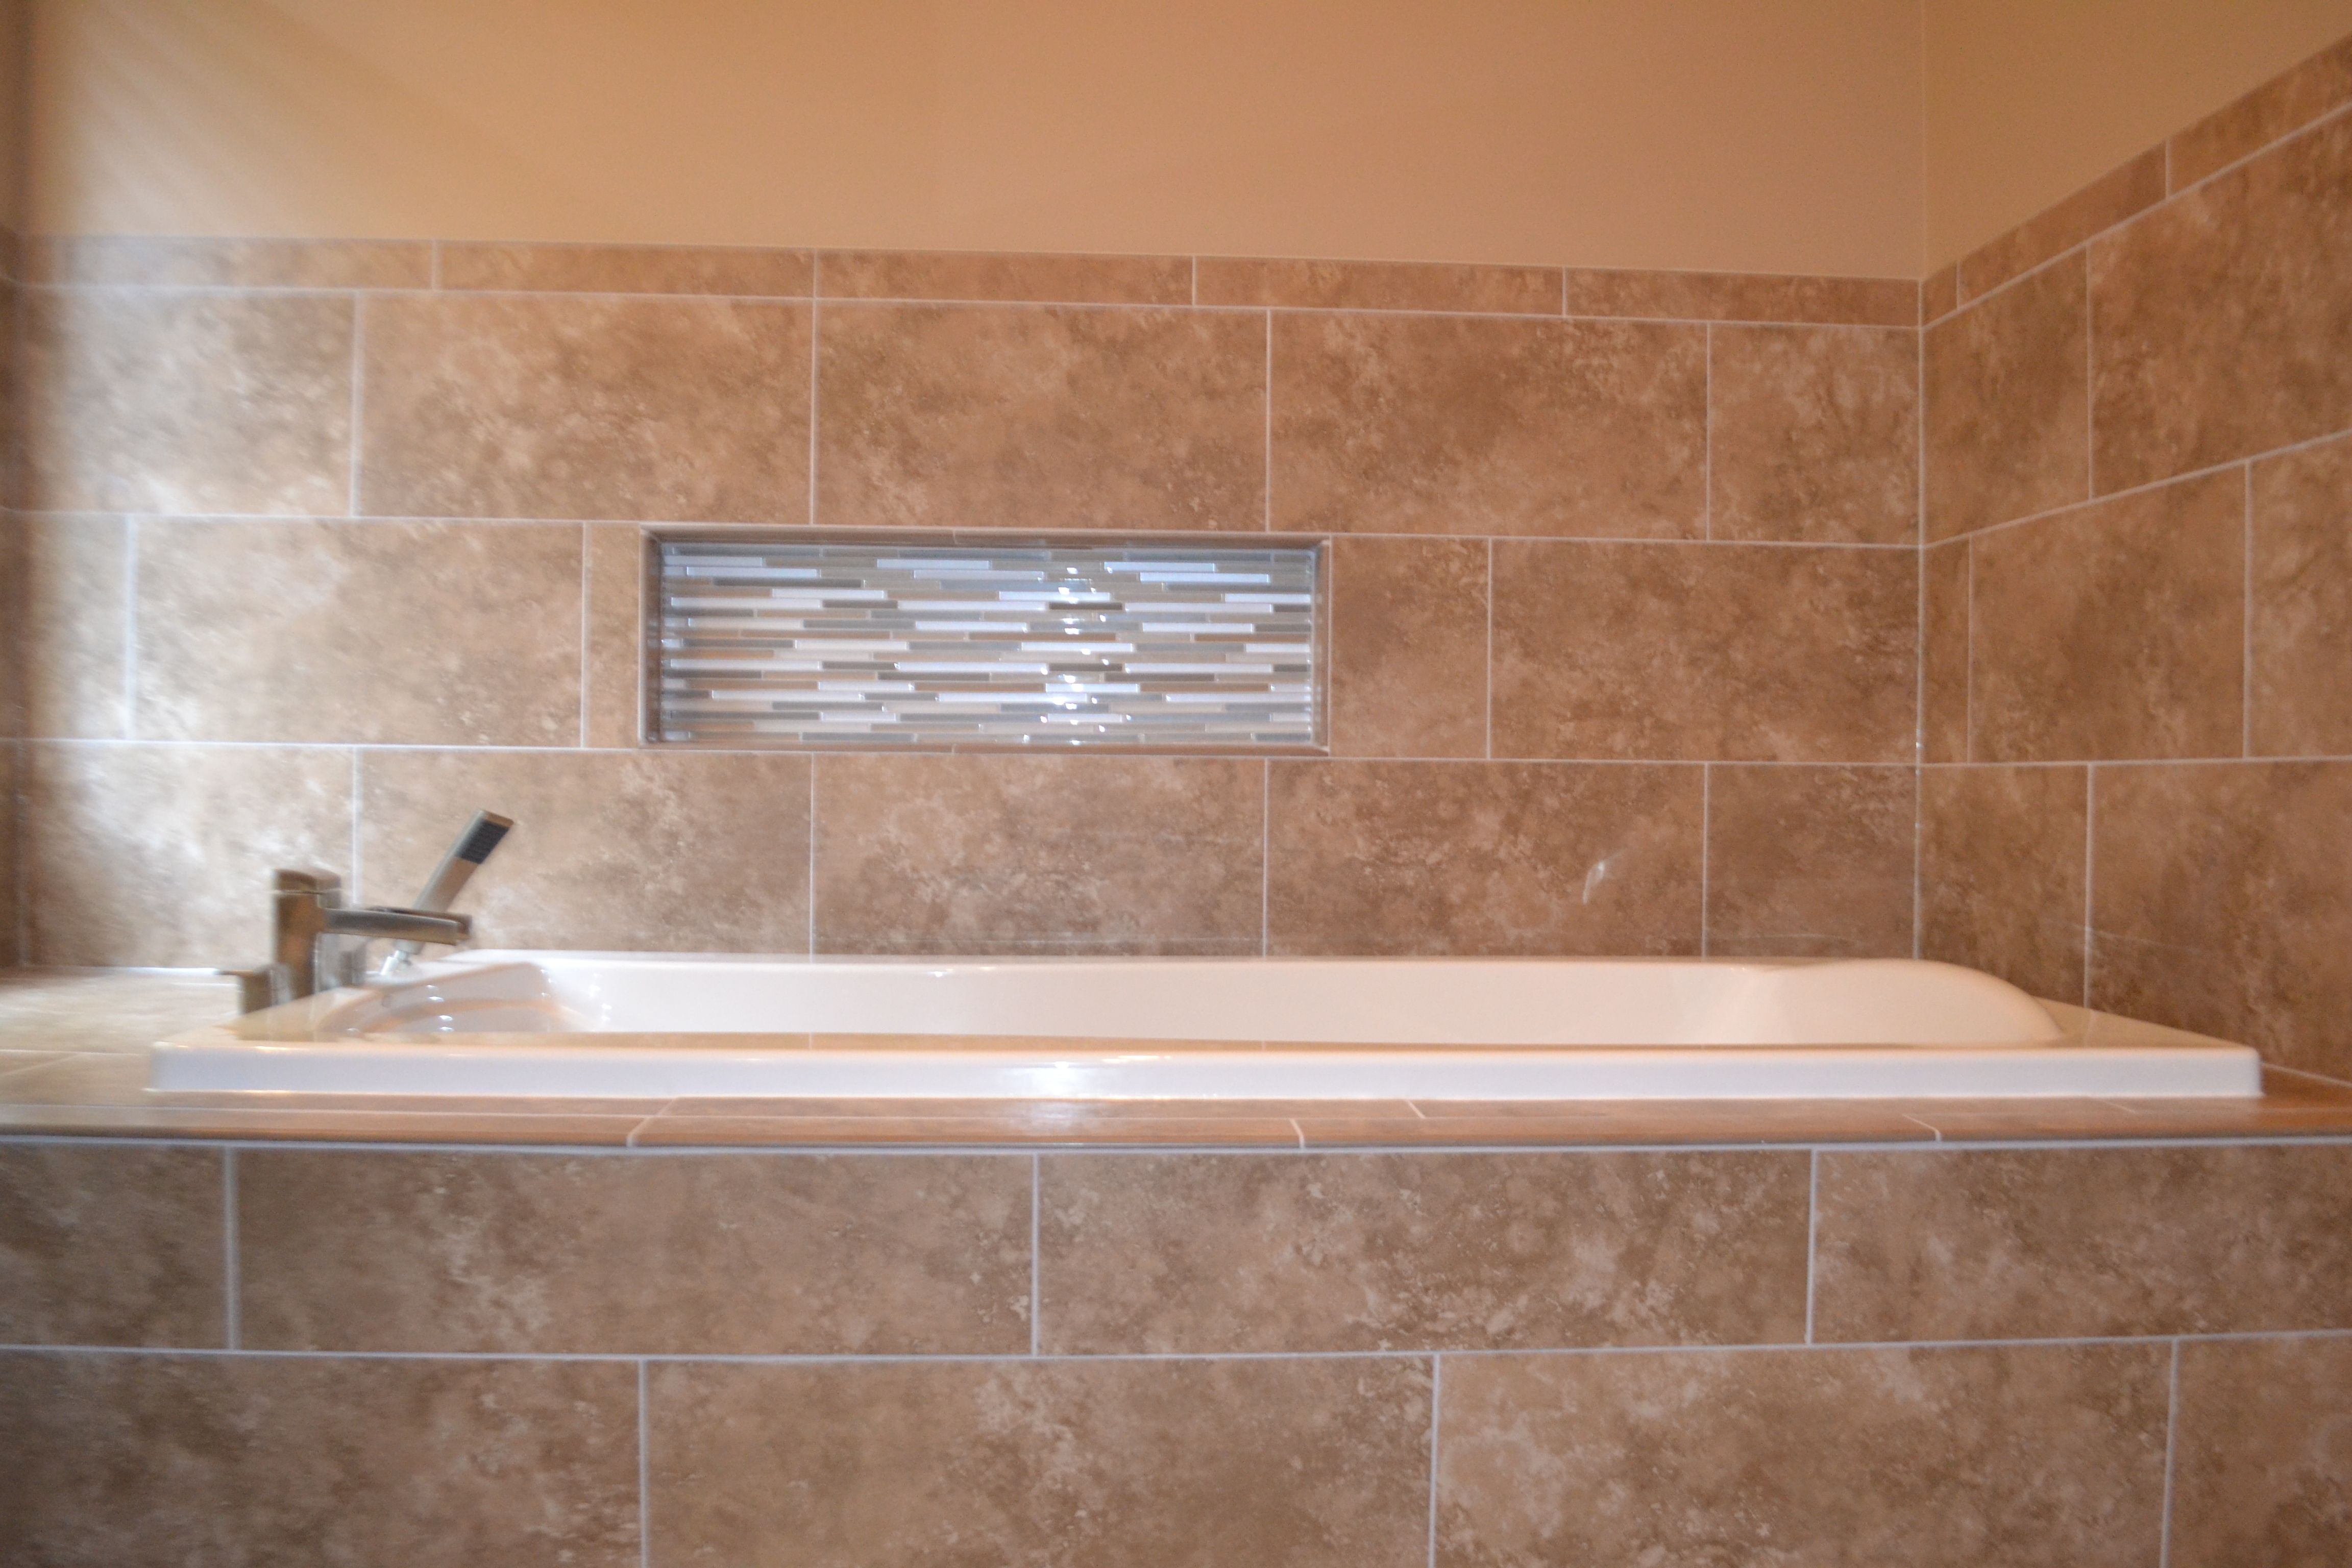 Soaker tub with tile surround and recessed \